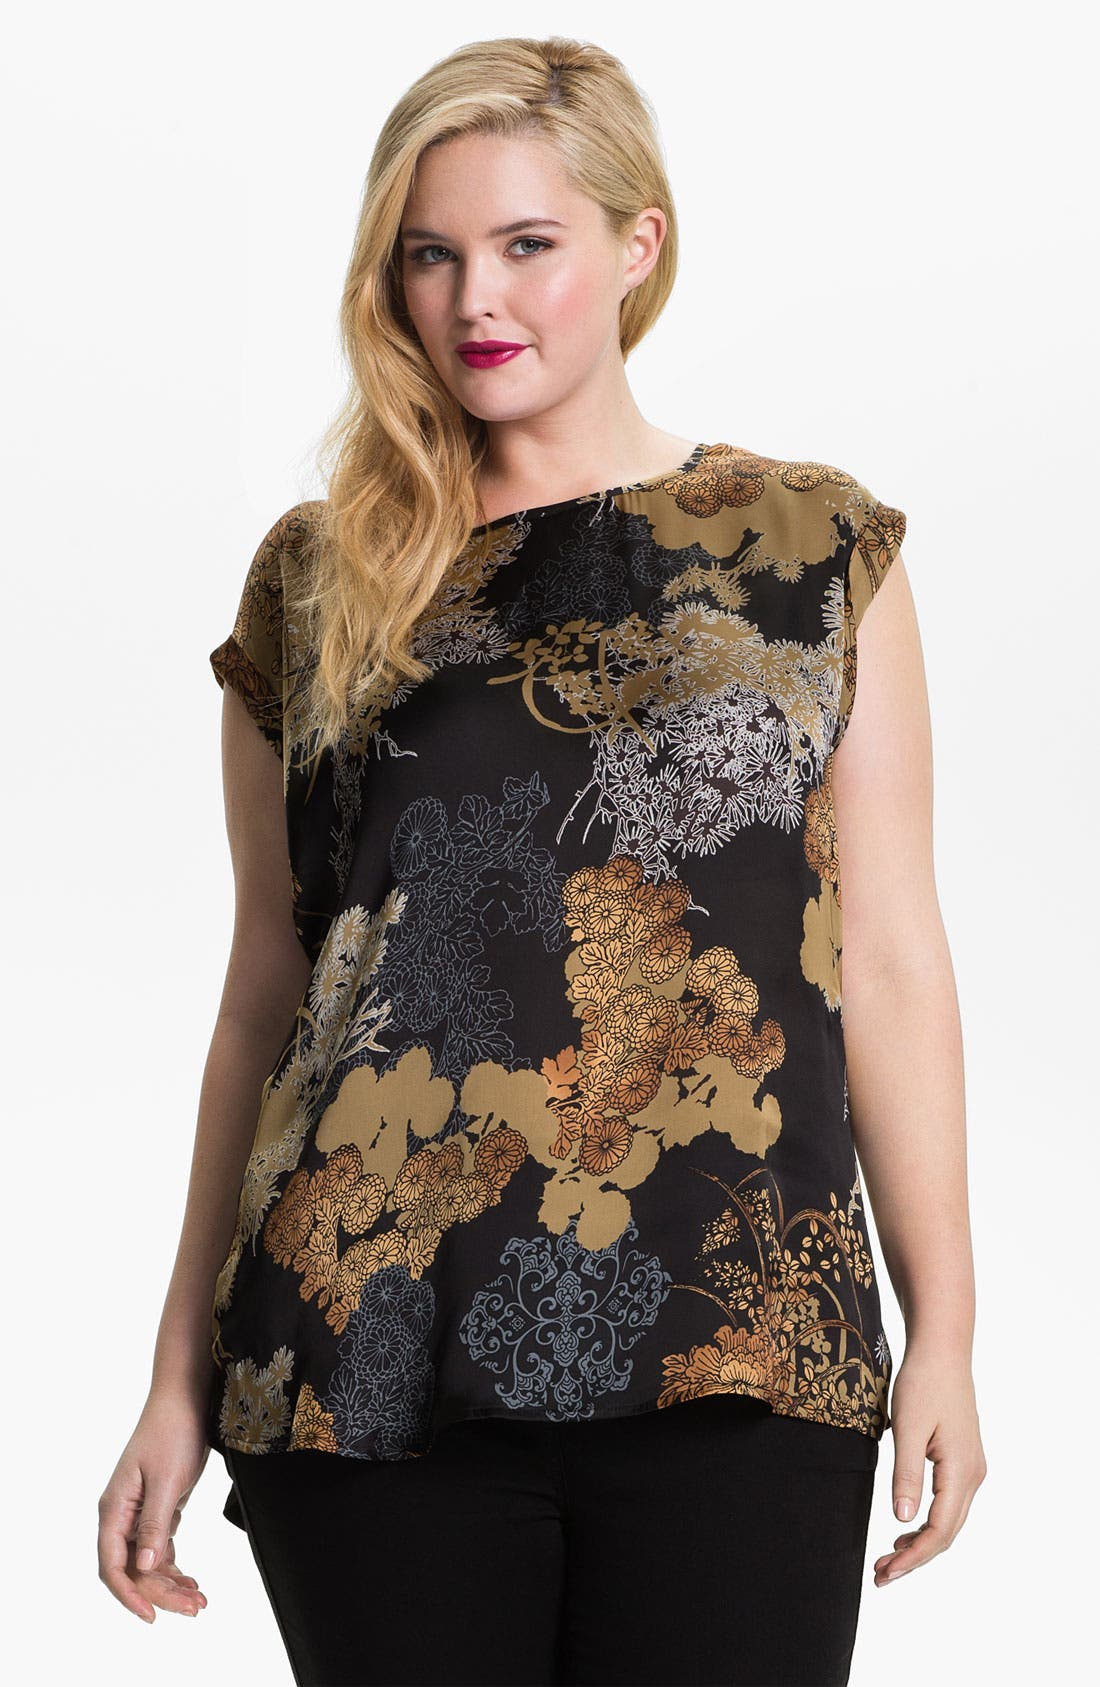 Alternate Image 1 Selected - Evans 'Oriental' Mixed Media Top (Plus Size)